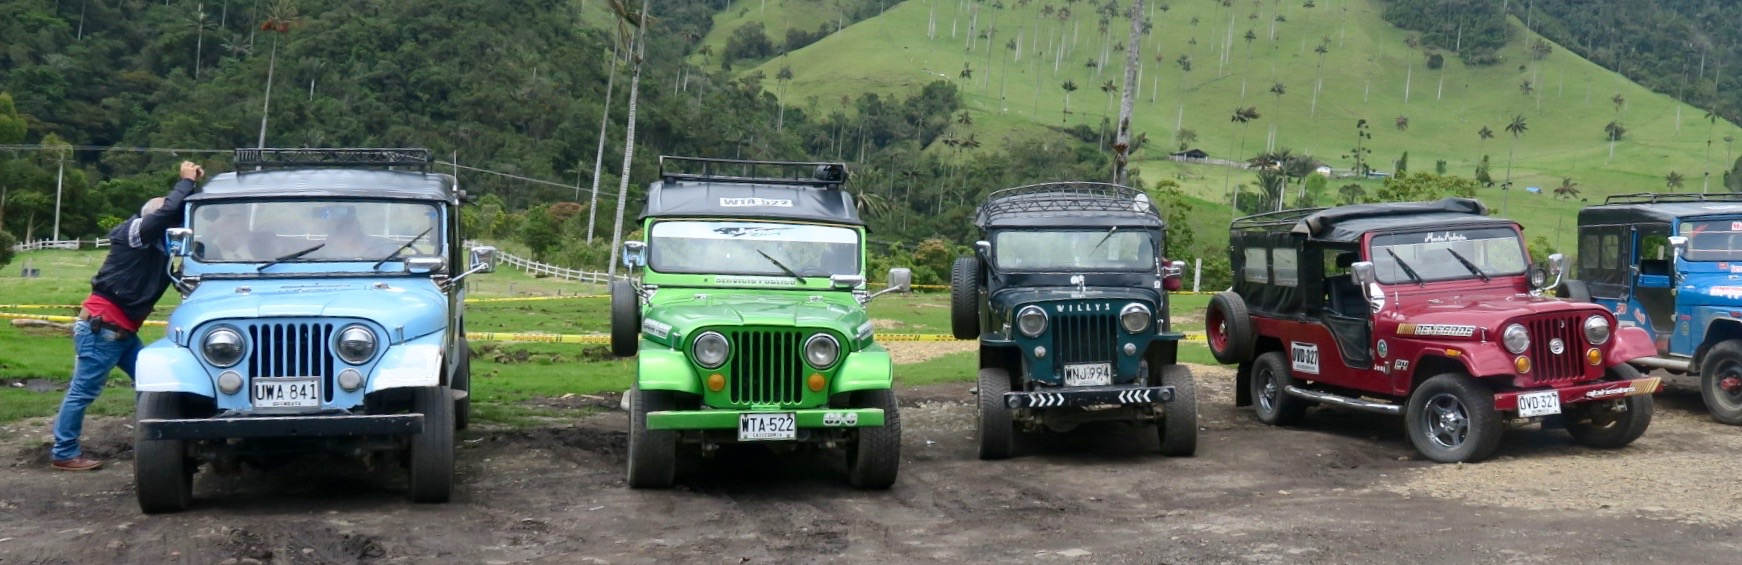 The Willys at Valle de Cocora